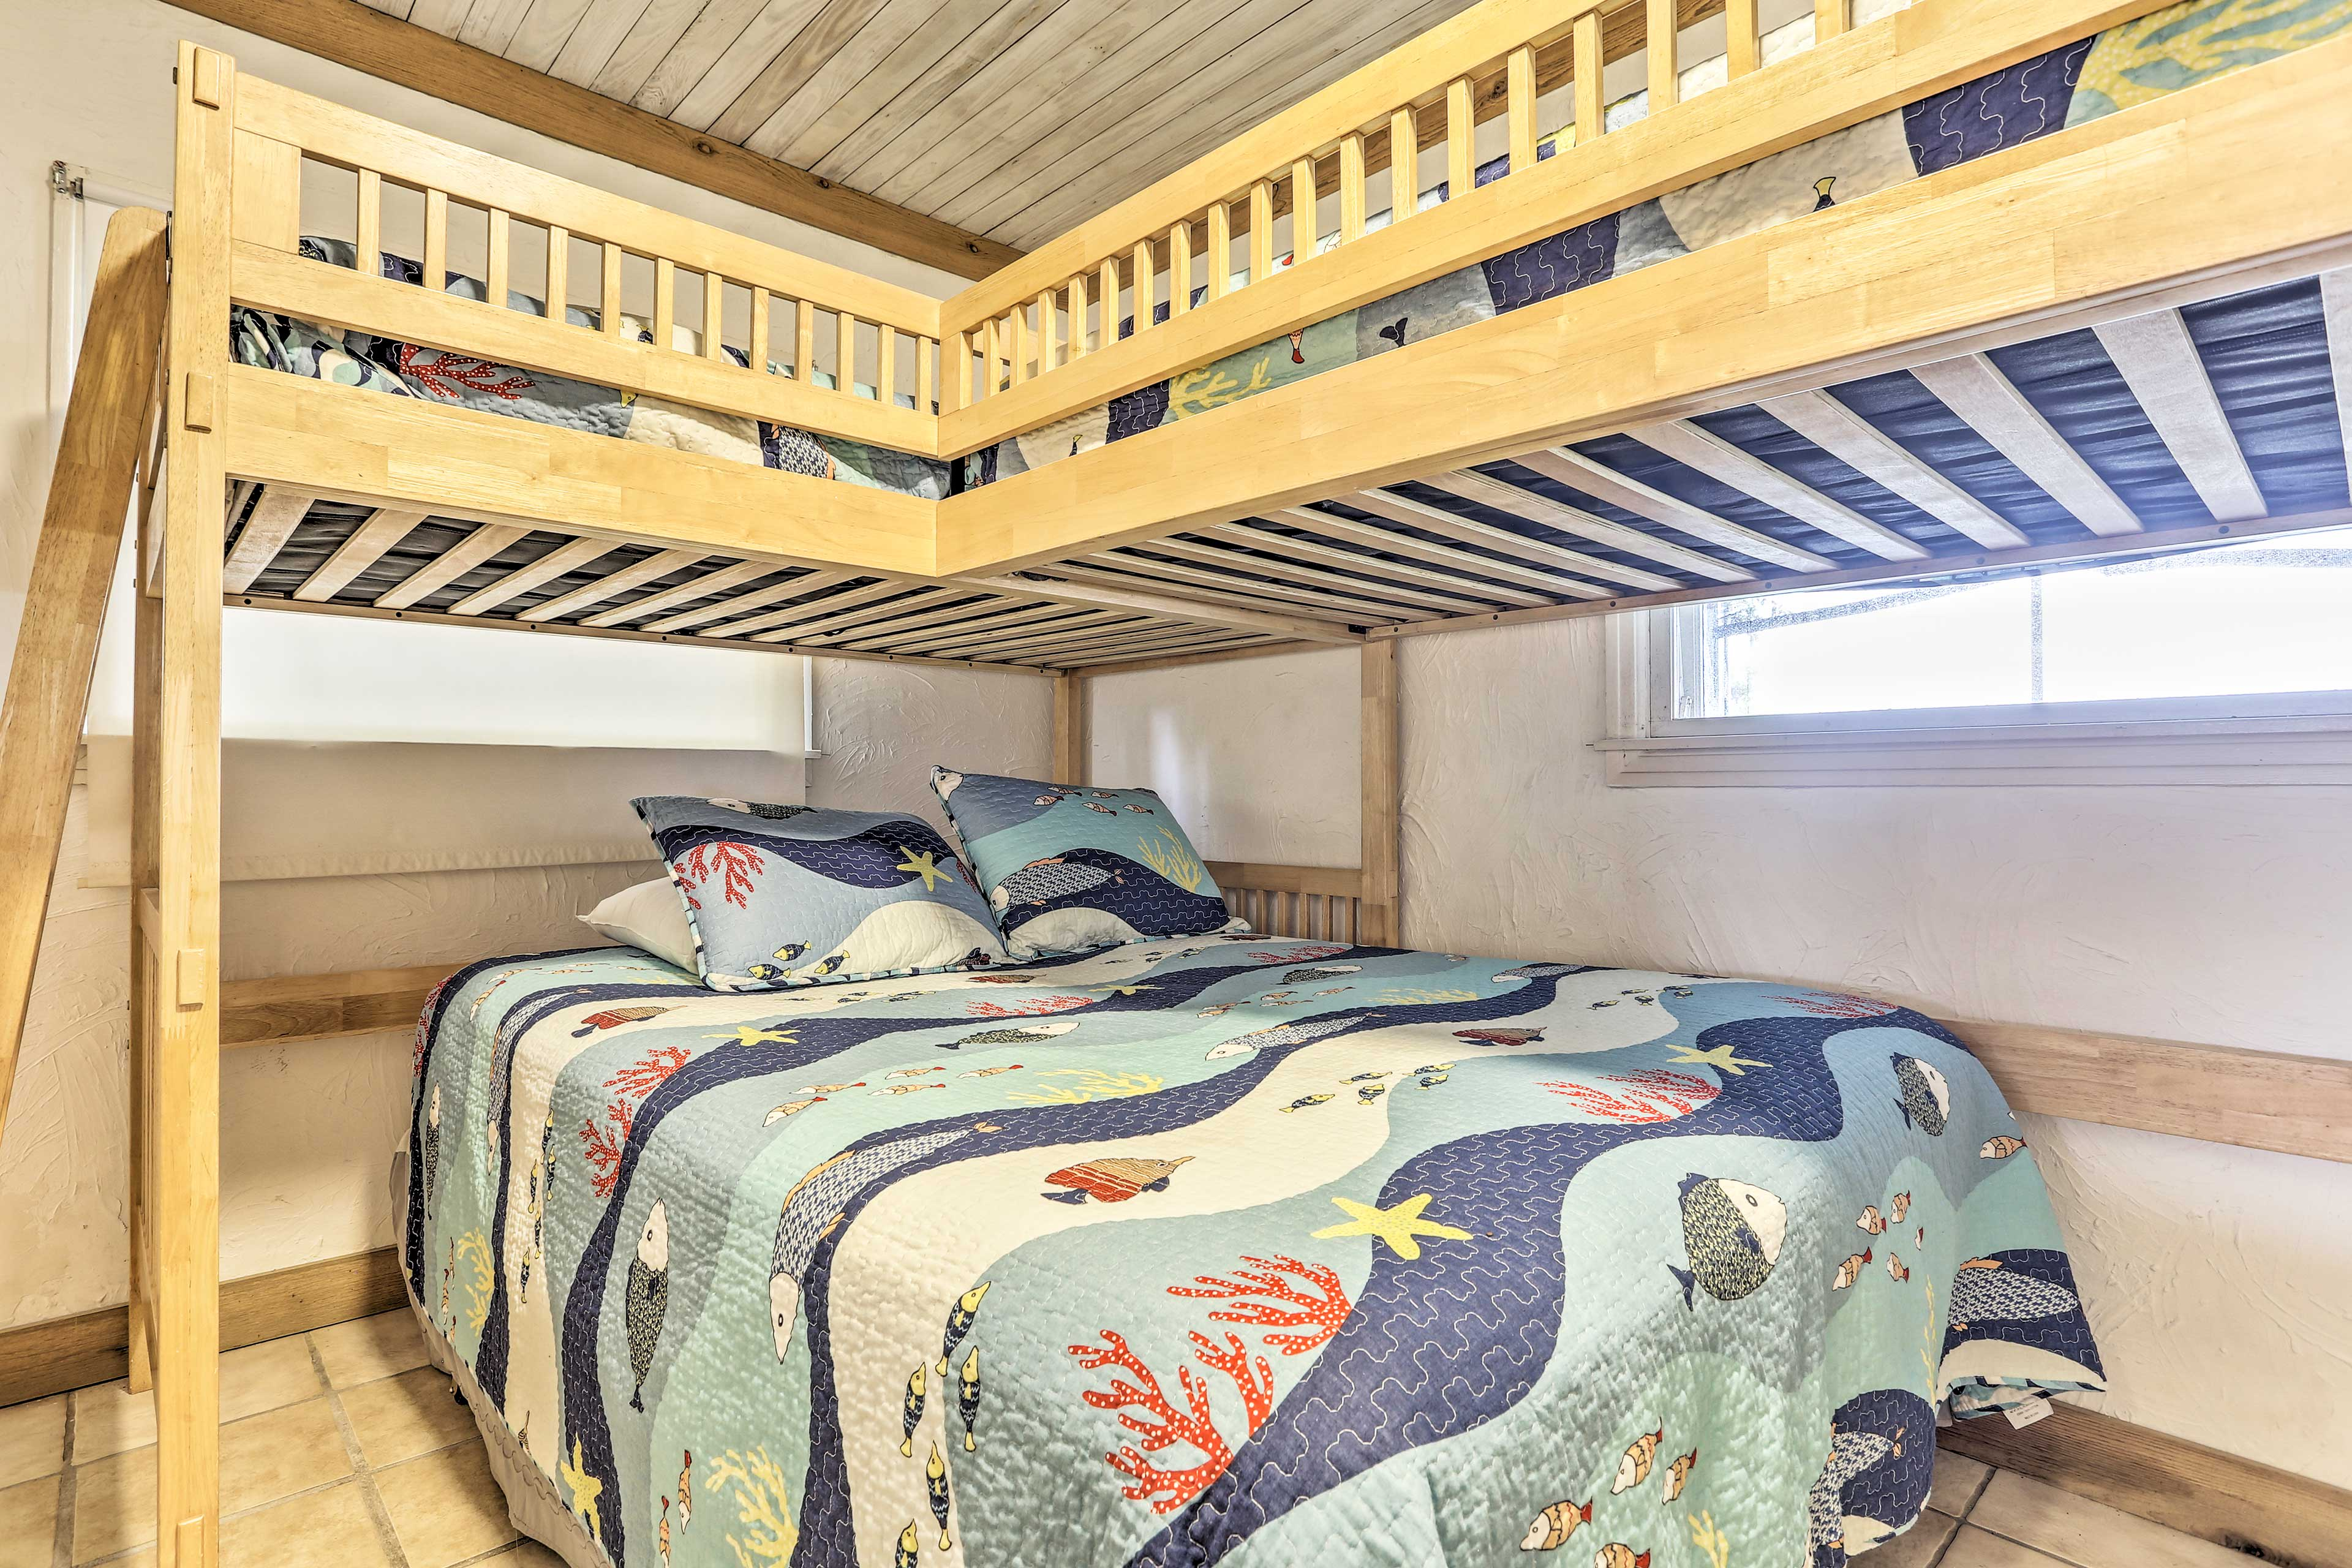 Five can share this bedroom.